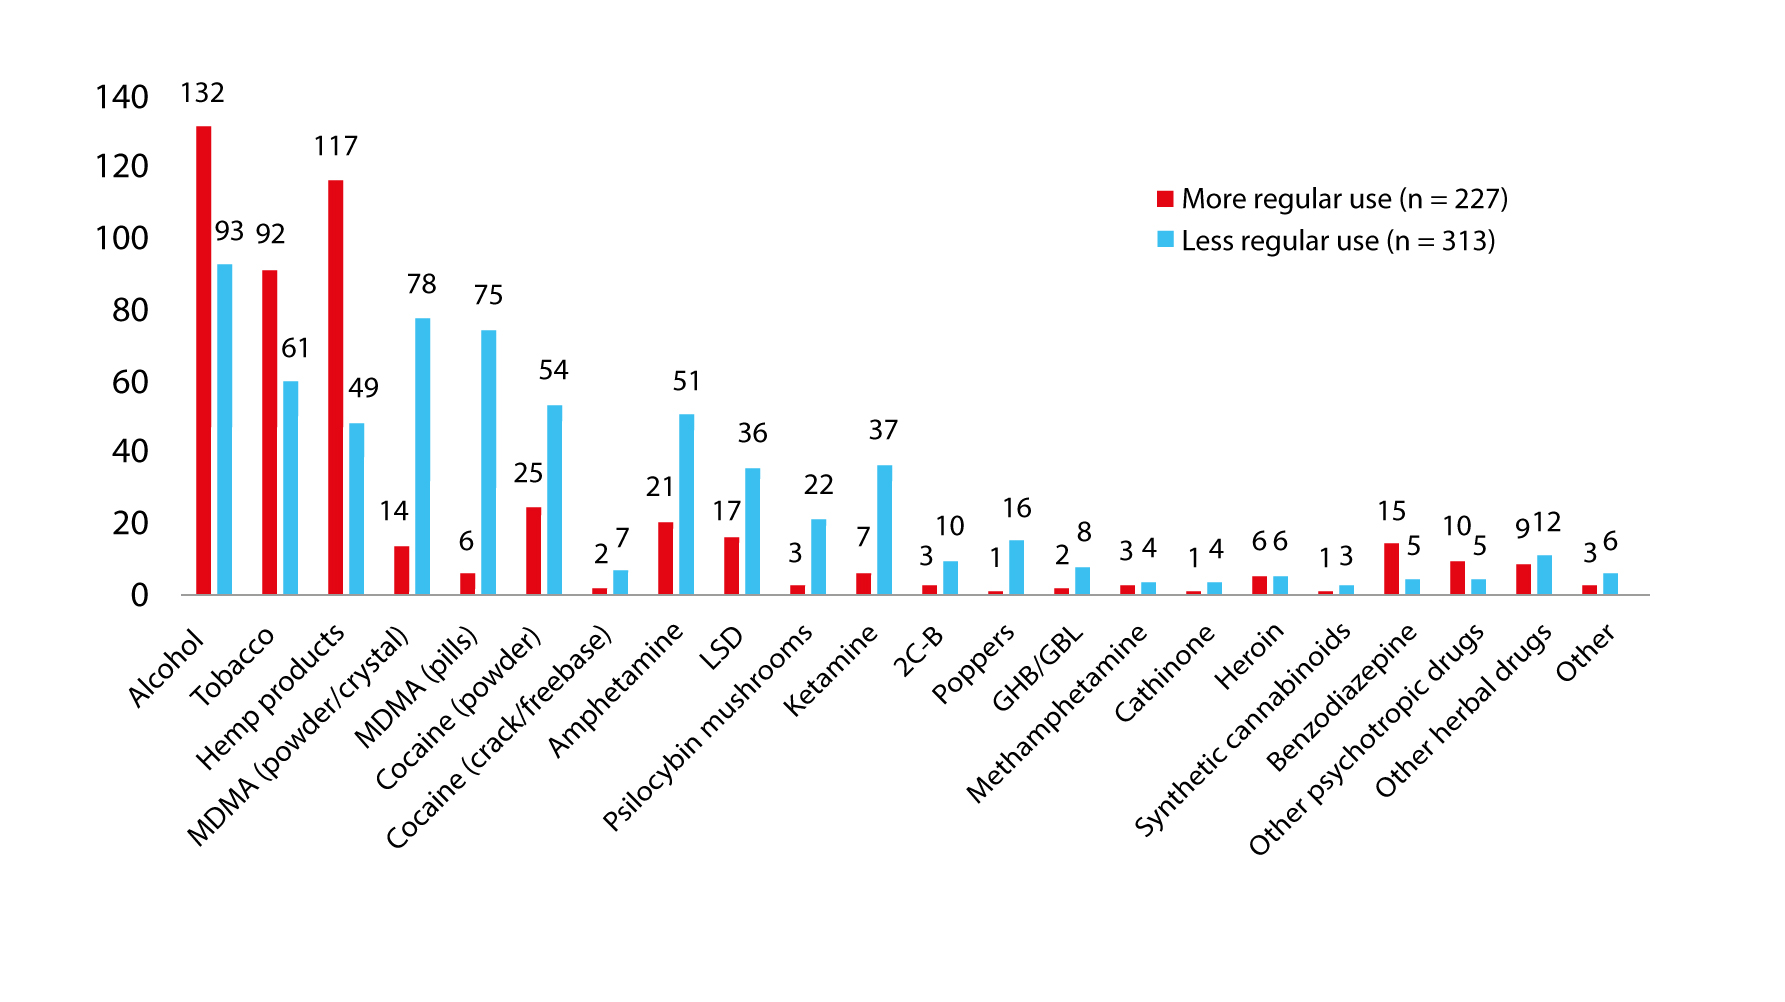 drug use in Switzerland since the outbreak of COVID-19.Source